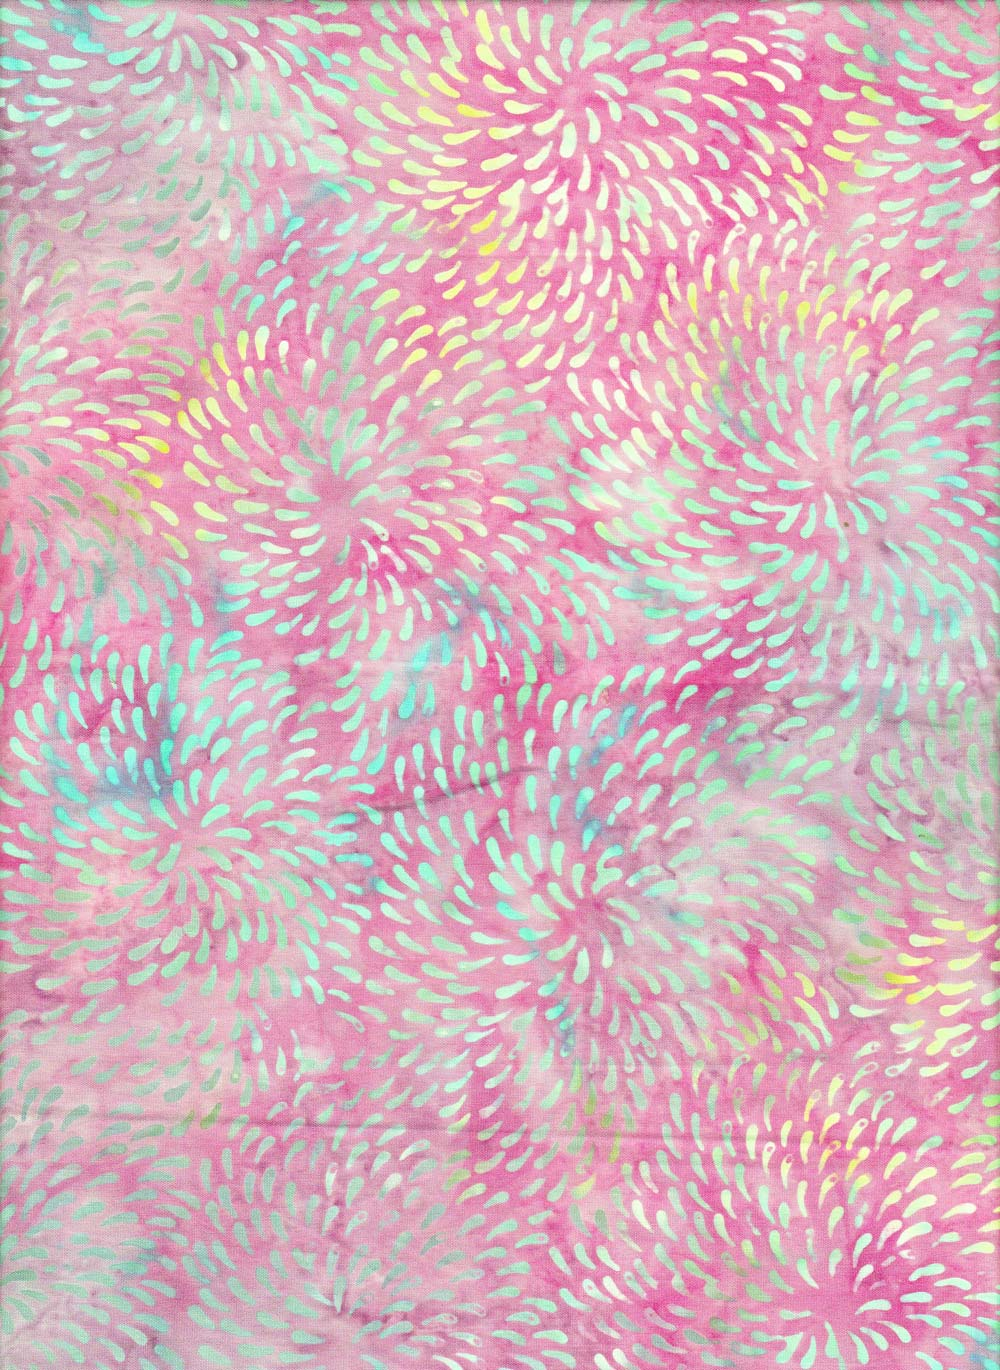 Blue Dot Vortex on Pink Batik Fabric